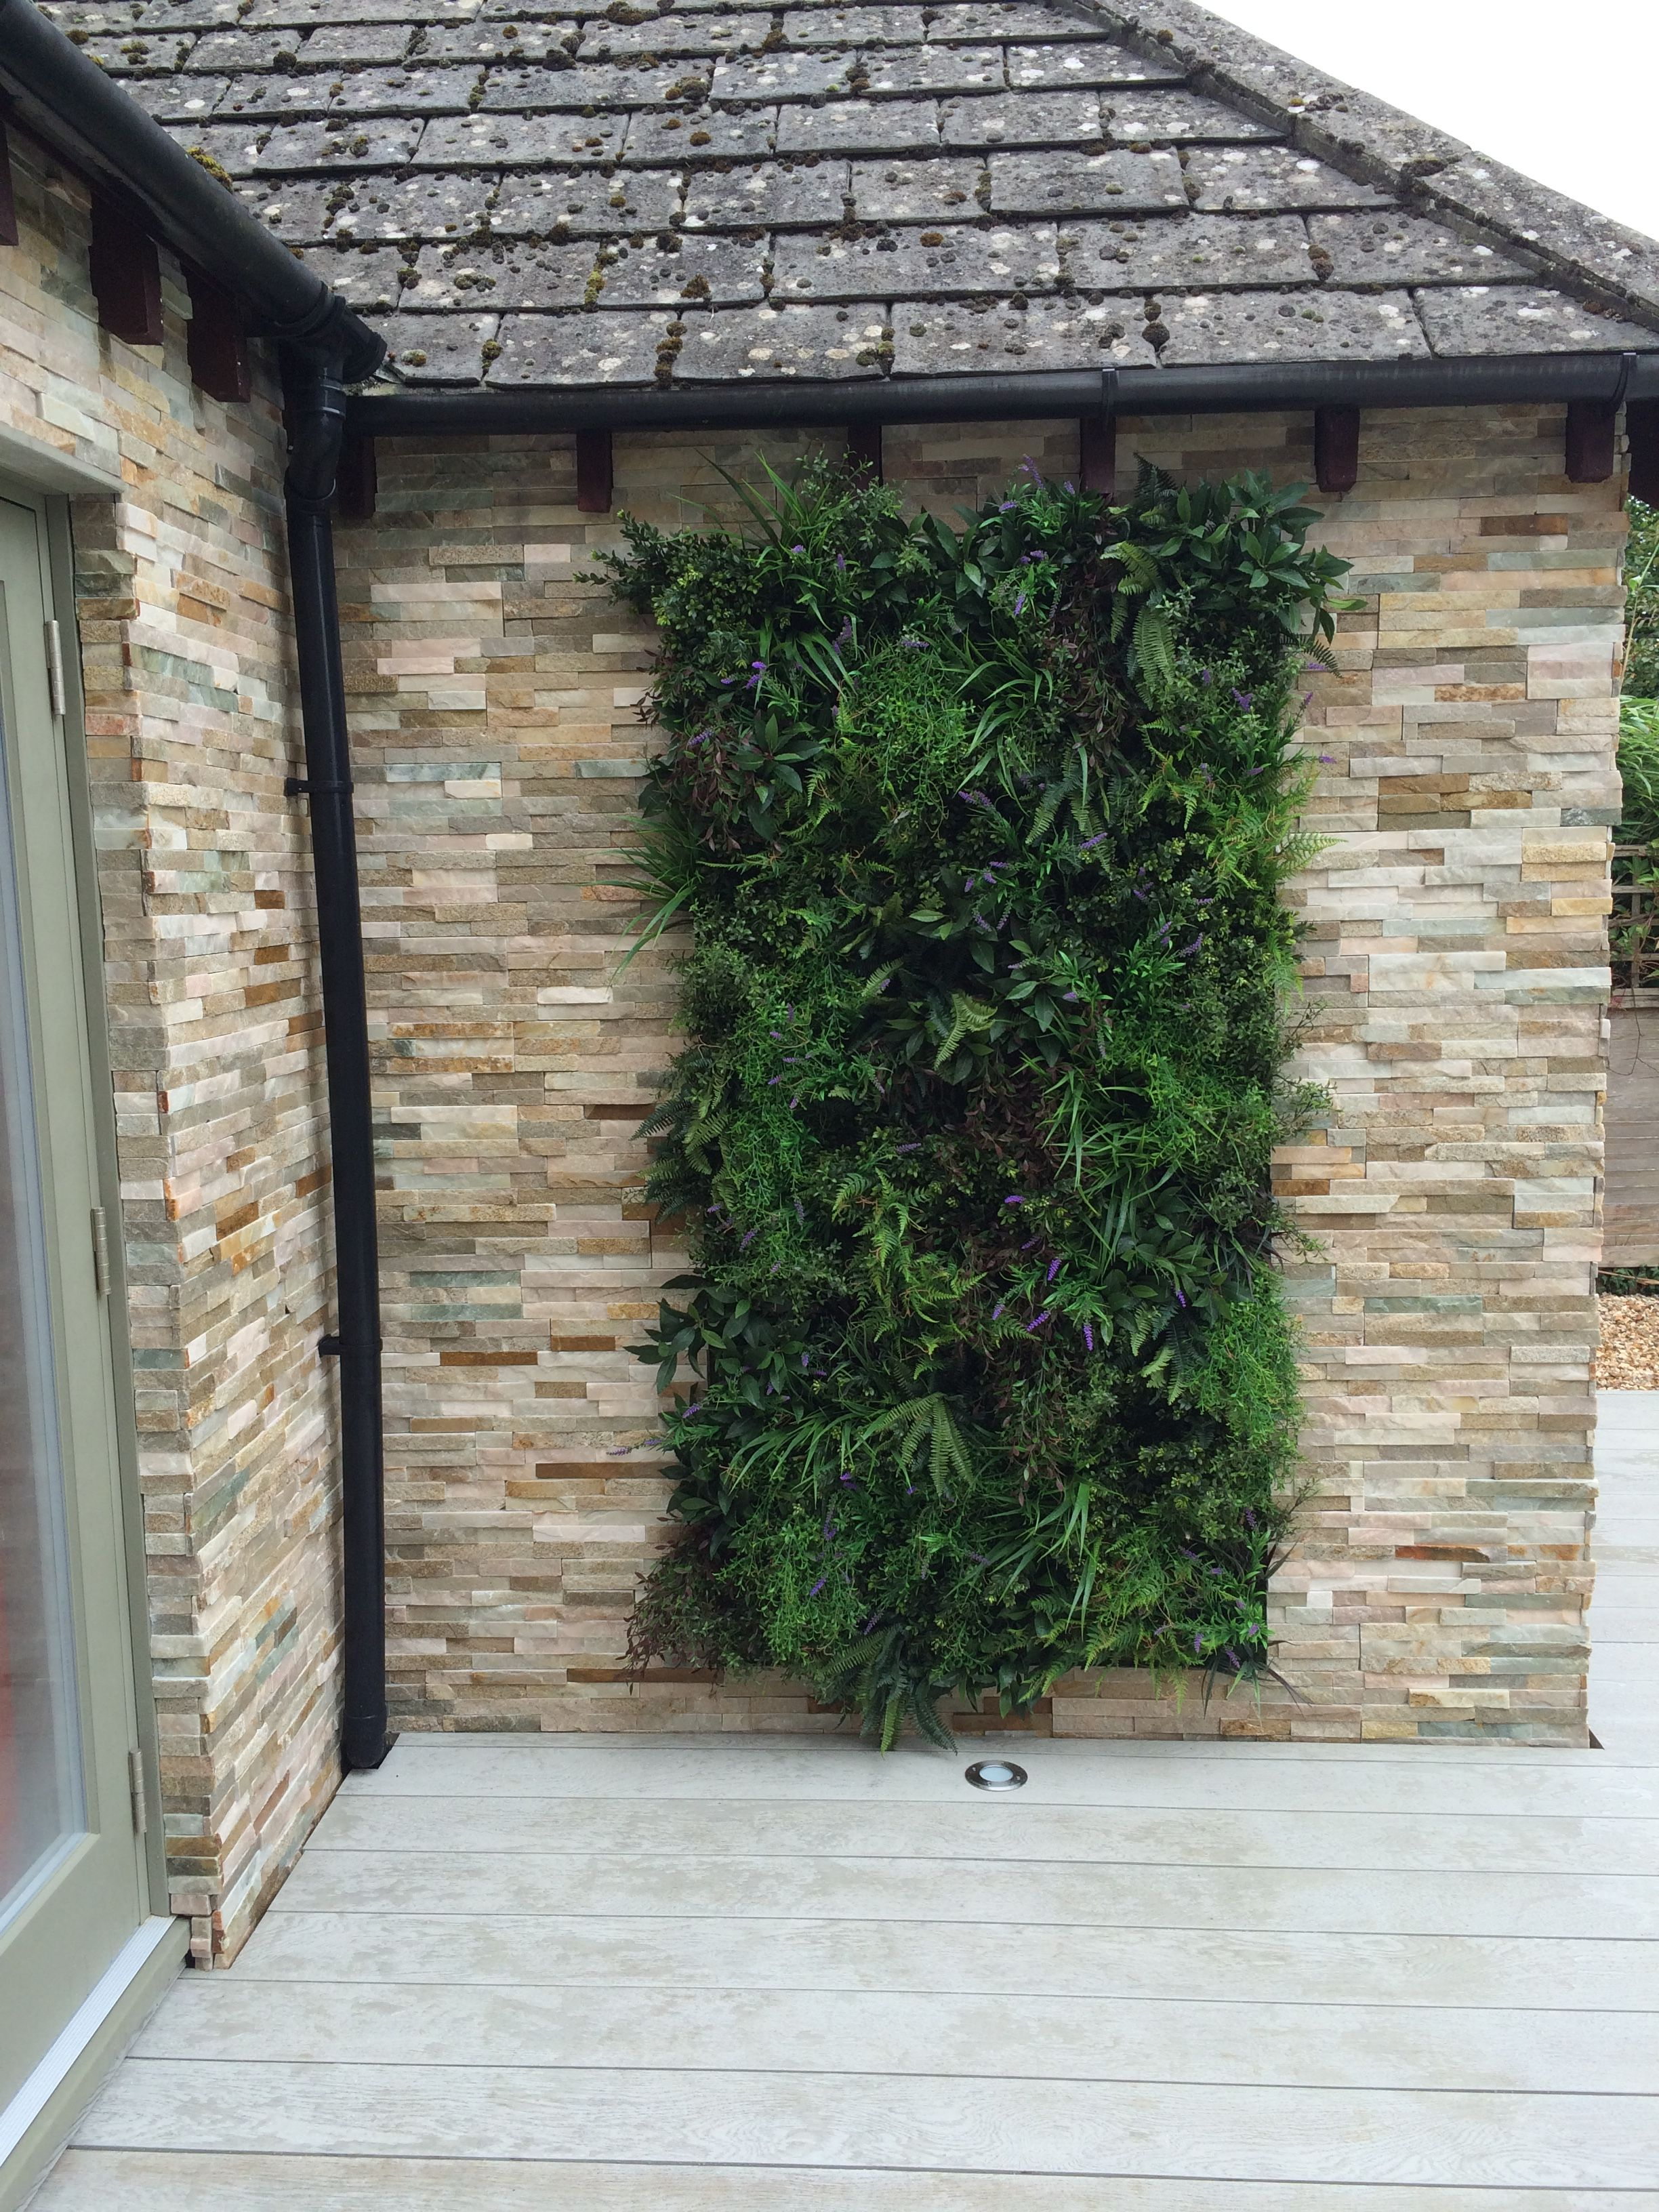 Marshalls Stoneface Drystack Veneer Walling With An Artificial Living Wall